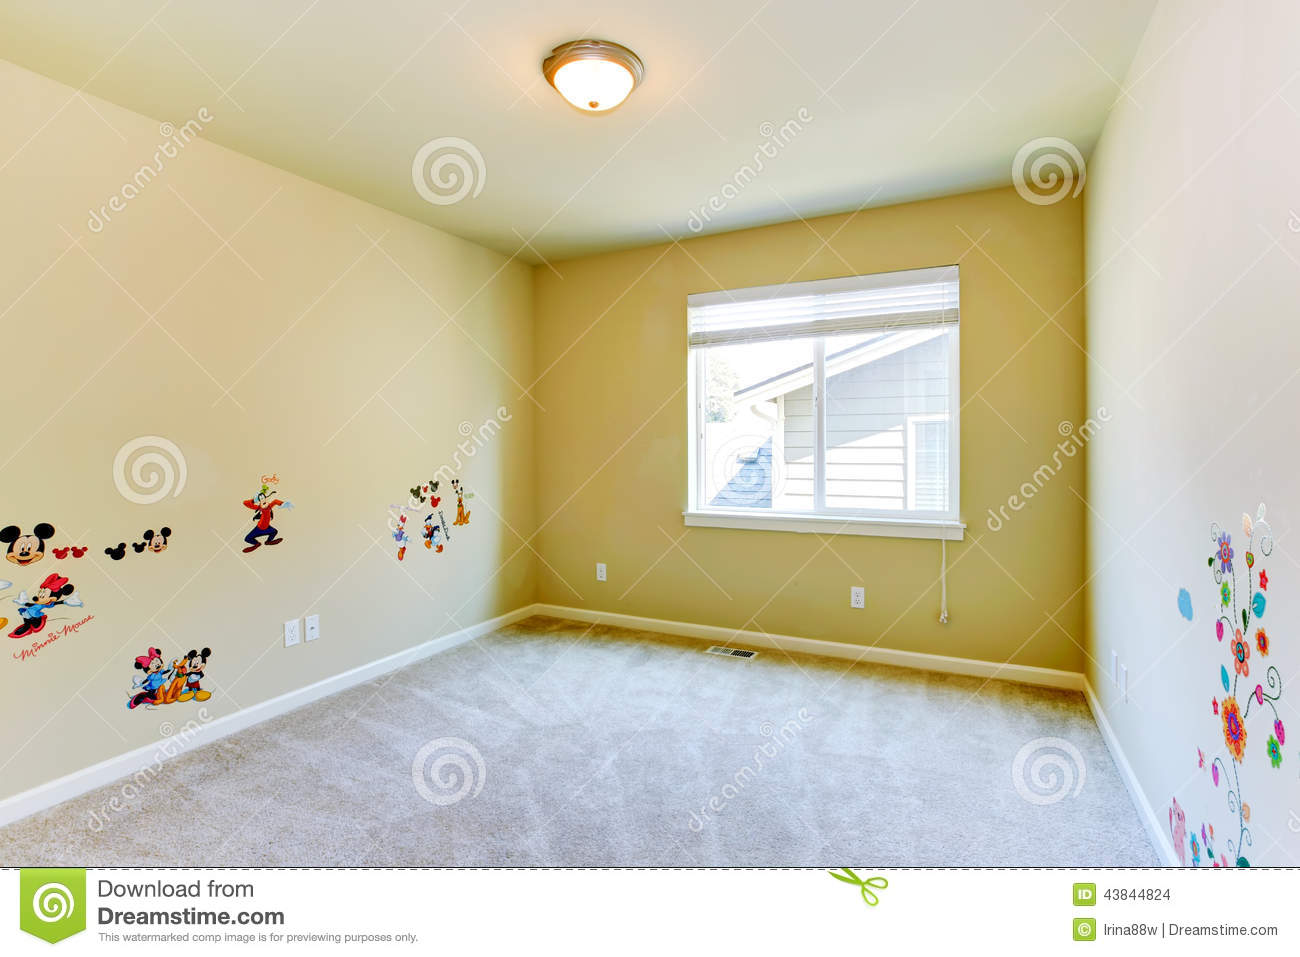 Empty Kids Room With Painted Walls Stock Photo   Image 43844824